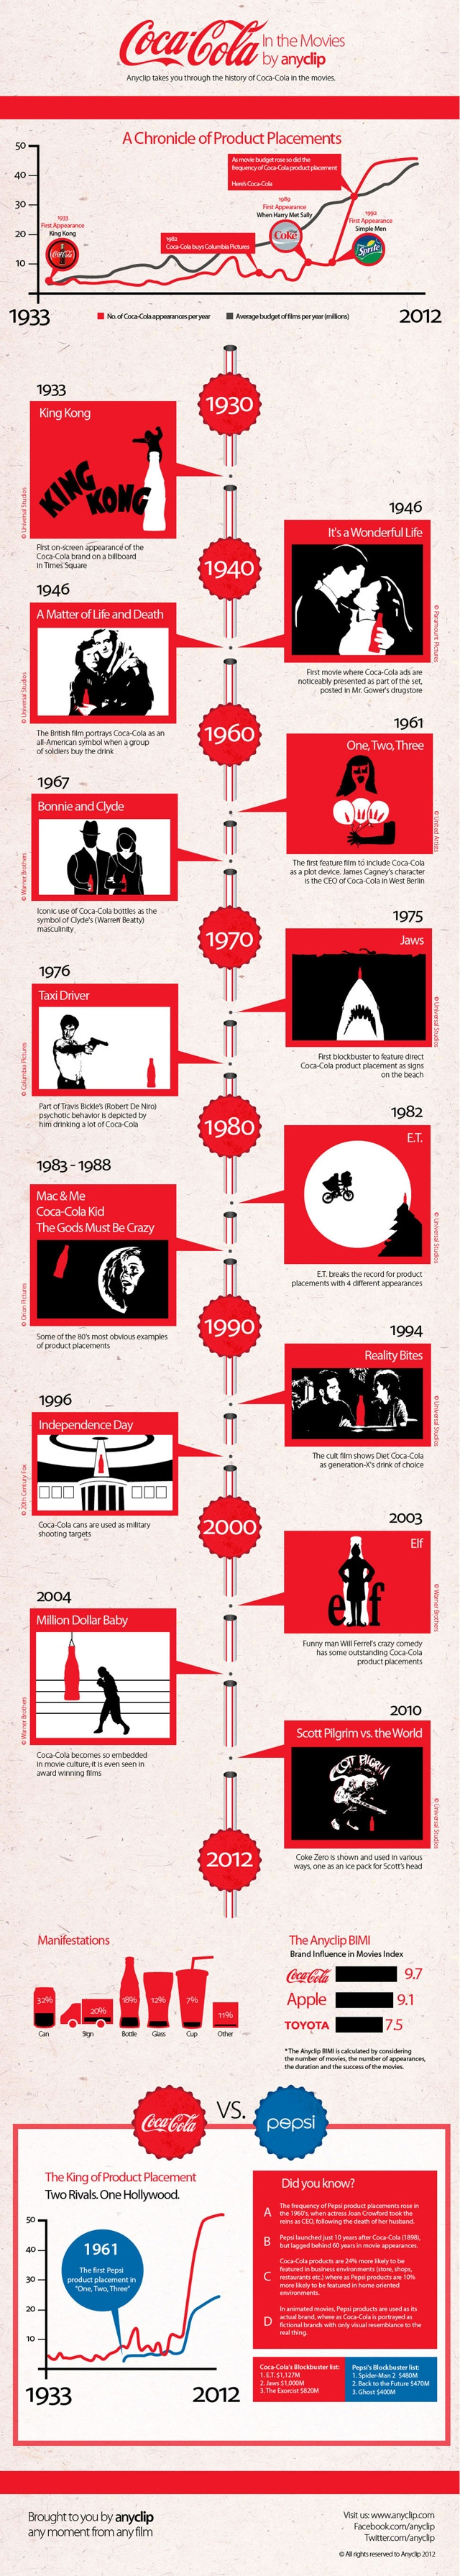 Coca-Cola in the MoviesFilm, Summer Movie, Graphics Design, Cocacola, Coca Cola, Cola Products, Diet Coke, Movie Infographic, Products Placements